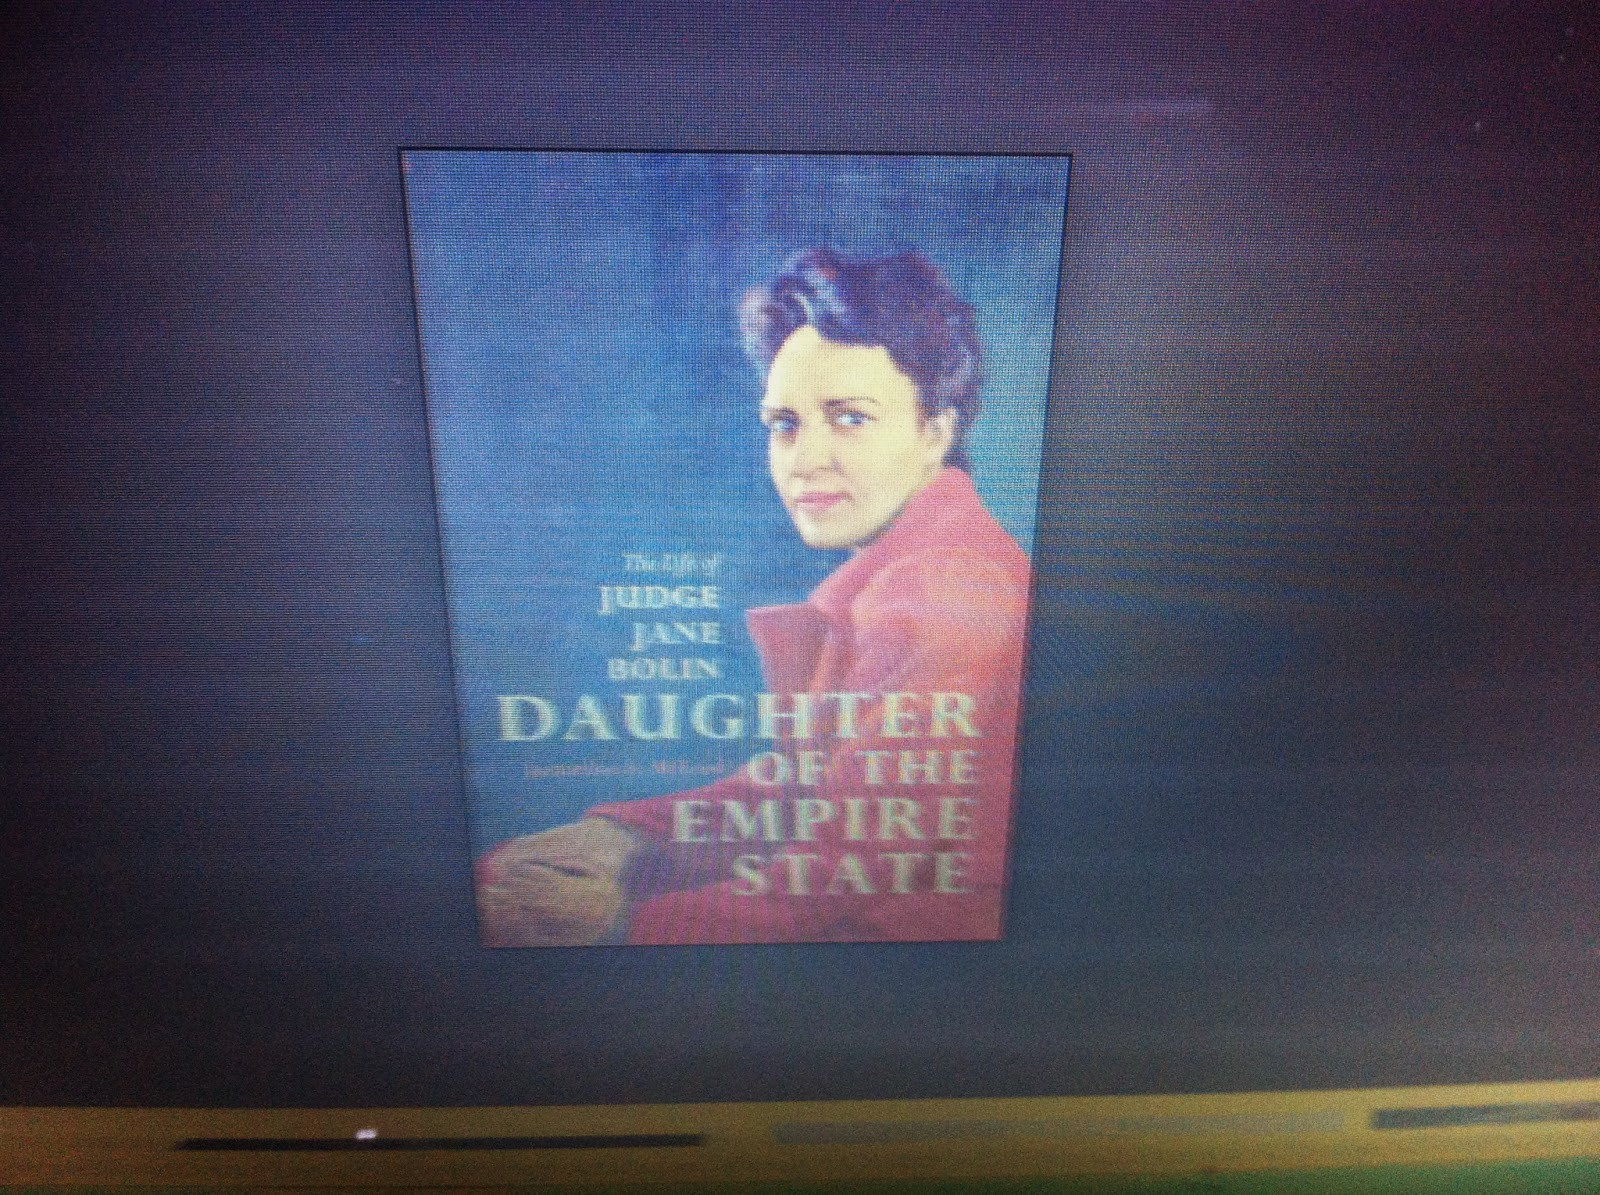 short biography jane matilda bolin Daughter of the empire state the life of judge jane bolin by jacqueline a mcleod.